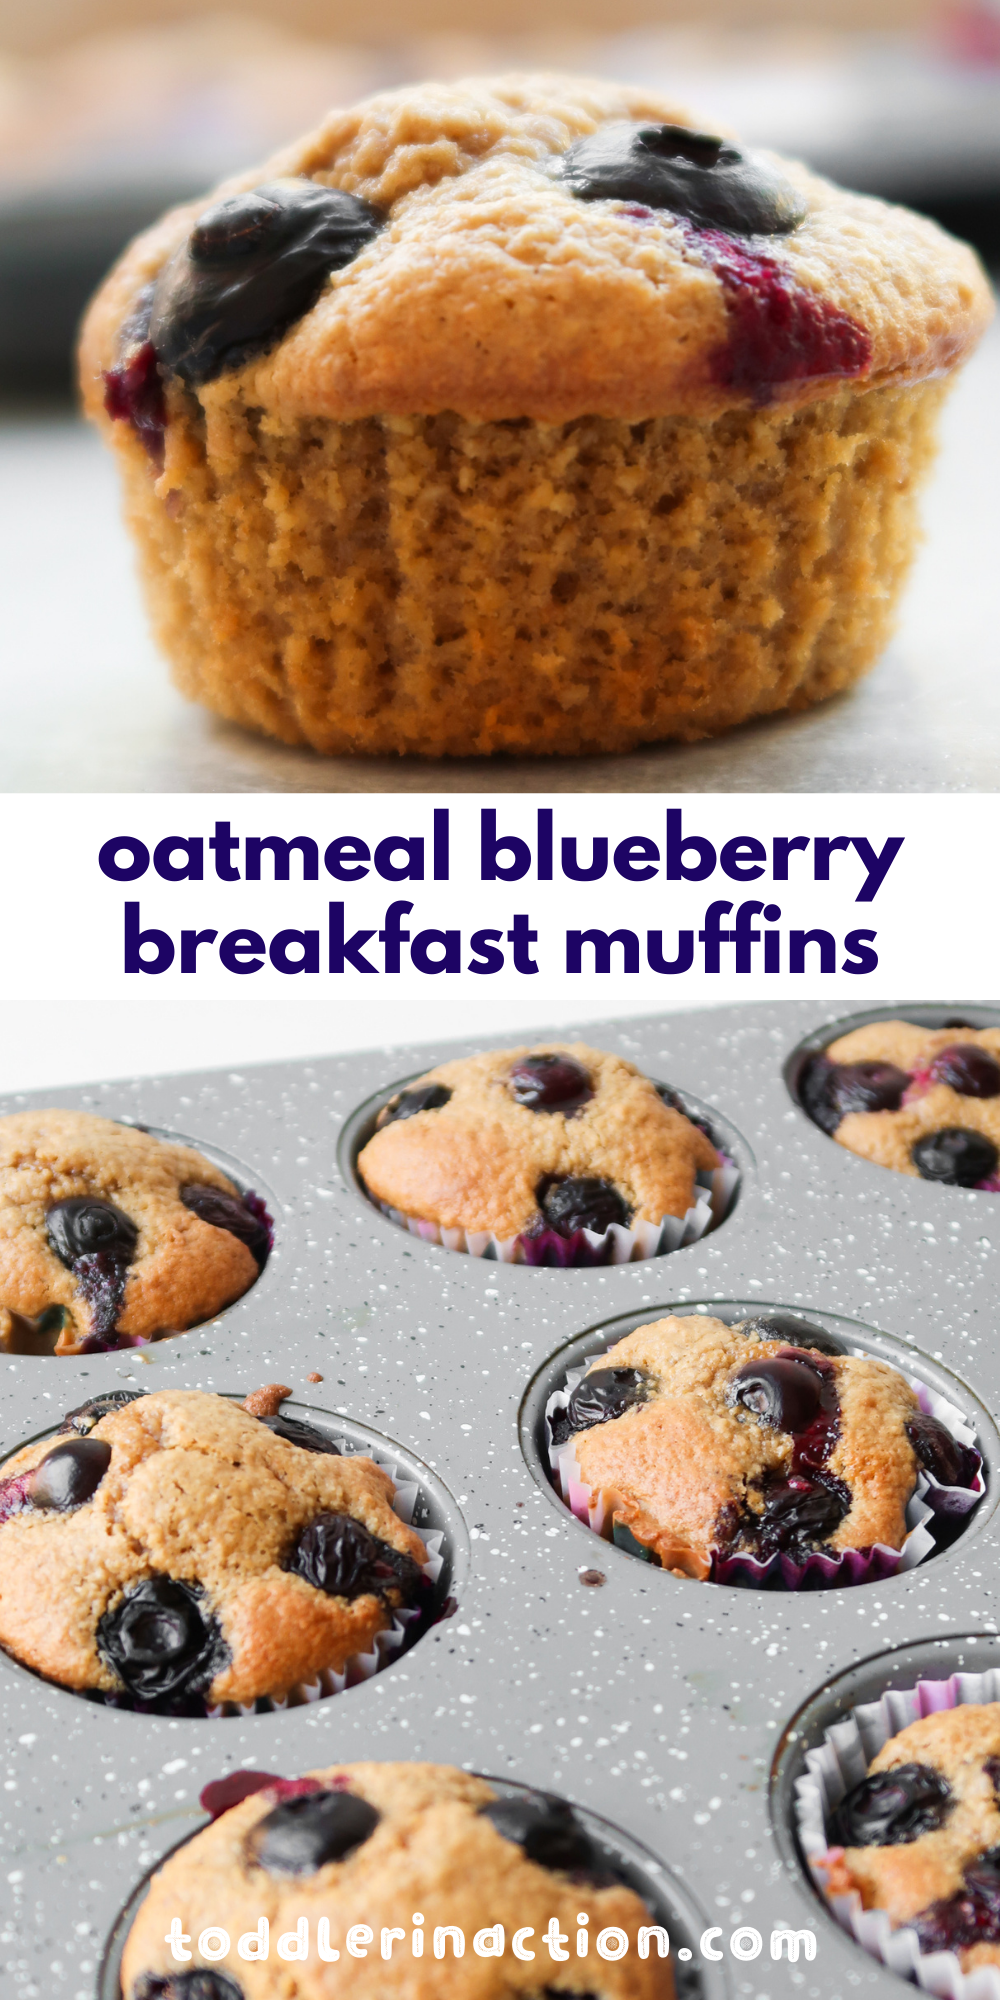 This simple oatmeal blueberry muffin recipe is great for an easy grab and go breakfast or snack! These healthy breakfast muffins are super easy to make (yes, a toddler can make them), they're toddler approved and enjoyed by grown ups as well.